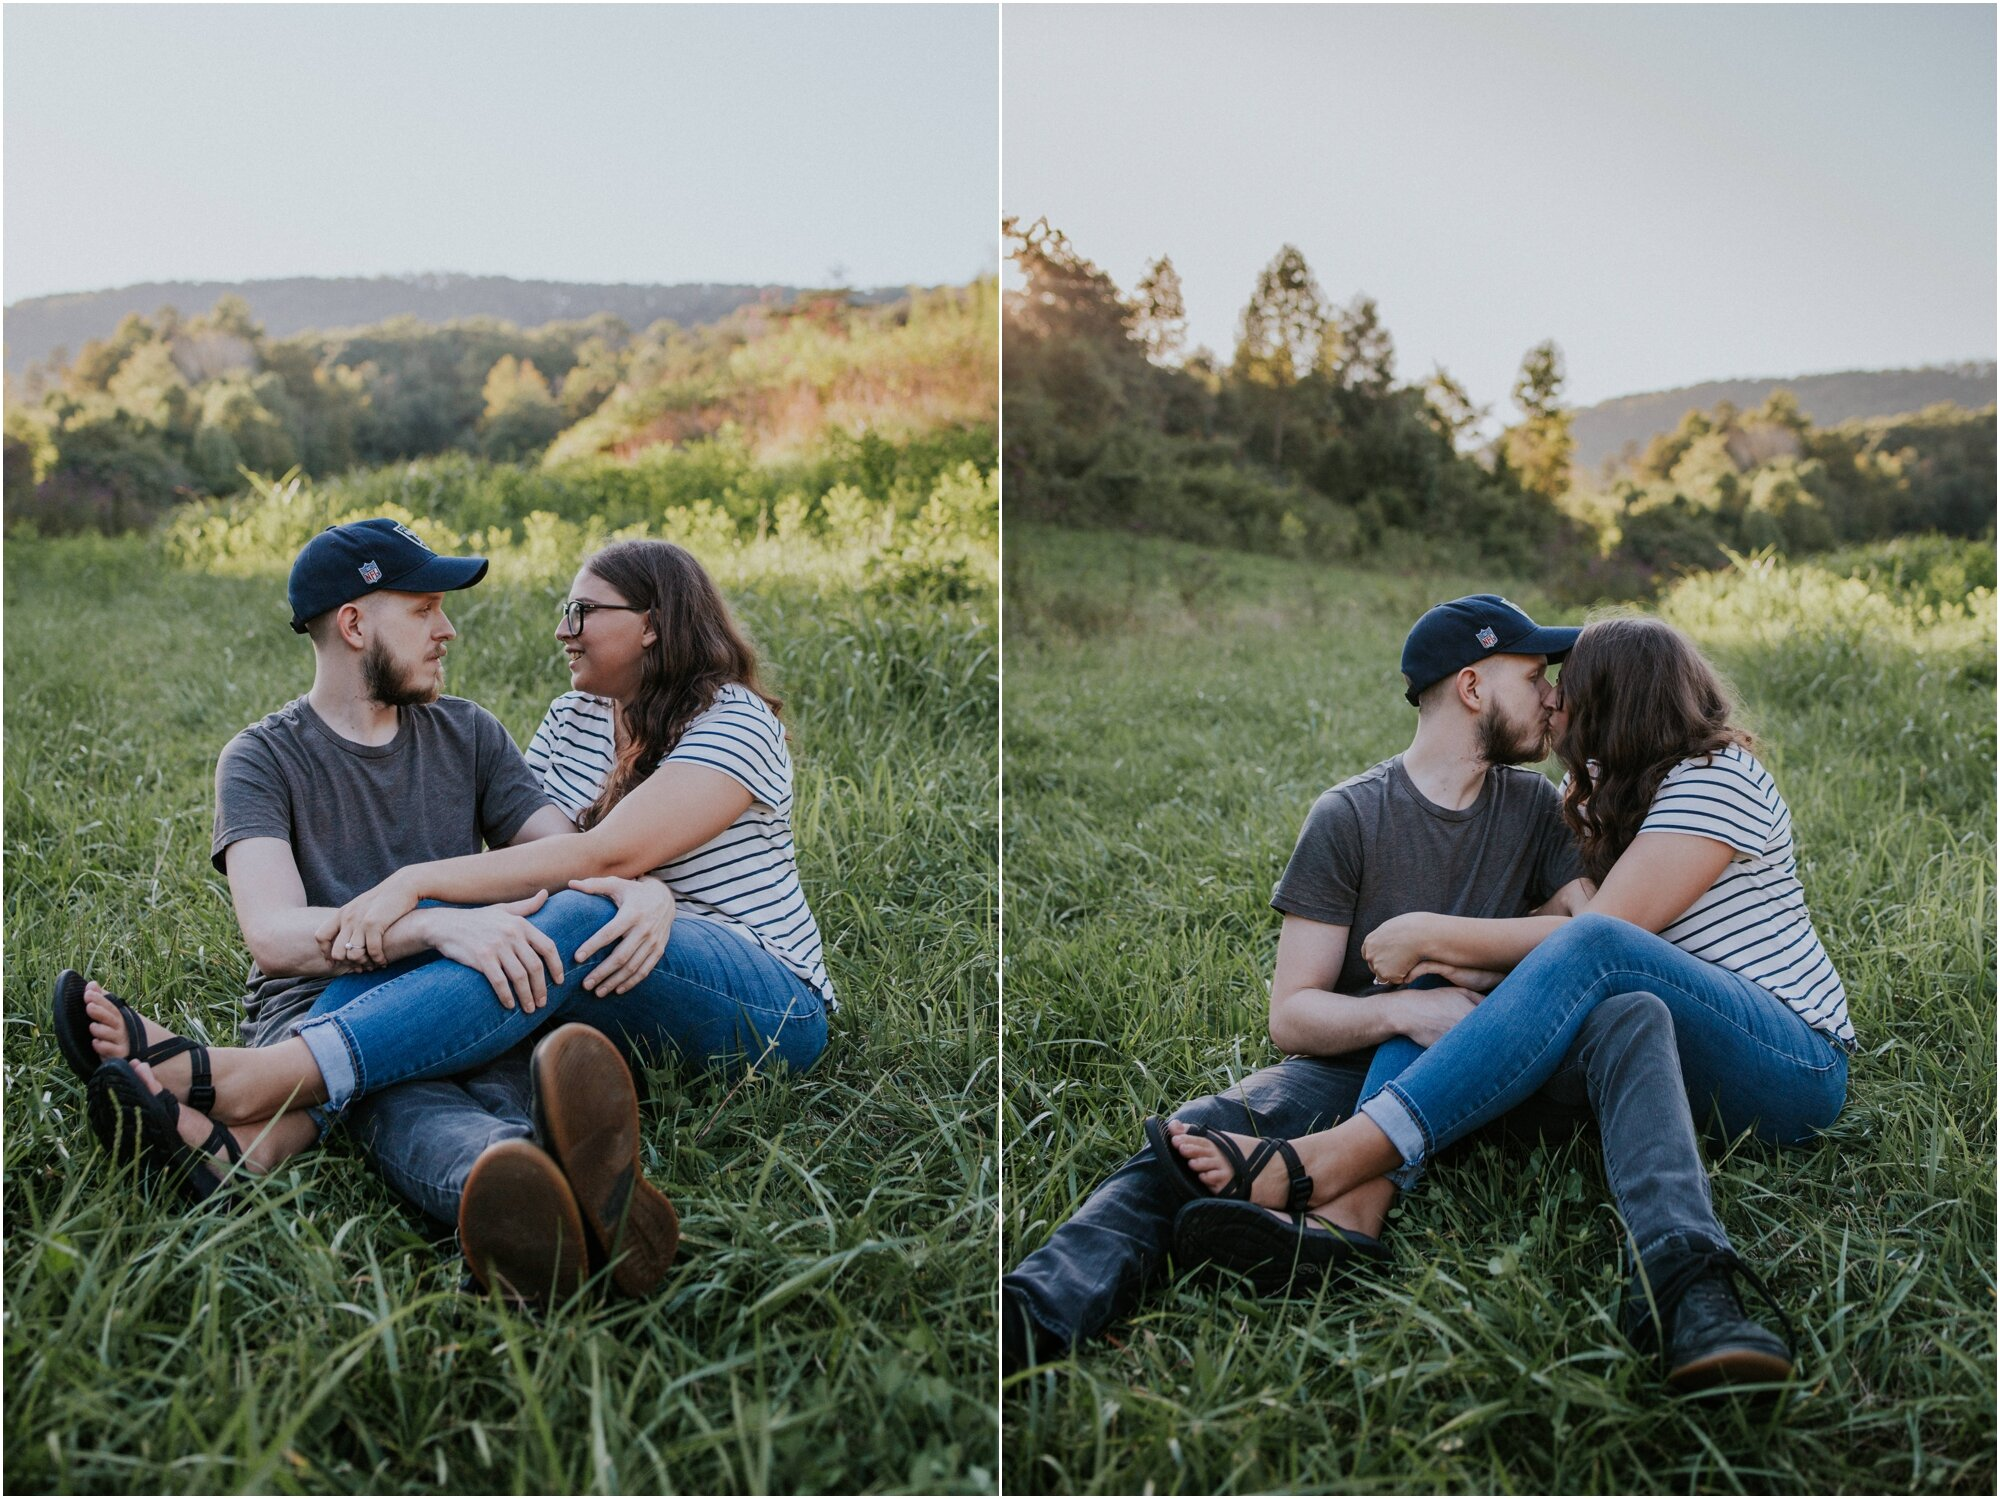 kingsport-tennessee-backyard-pond-bays-mountain-summer-engagement-session_0011.jpg